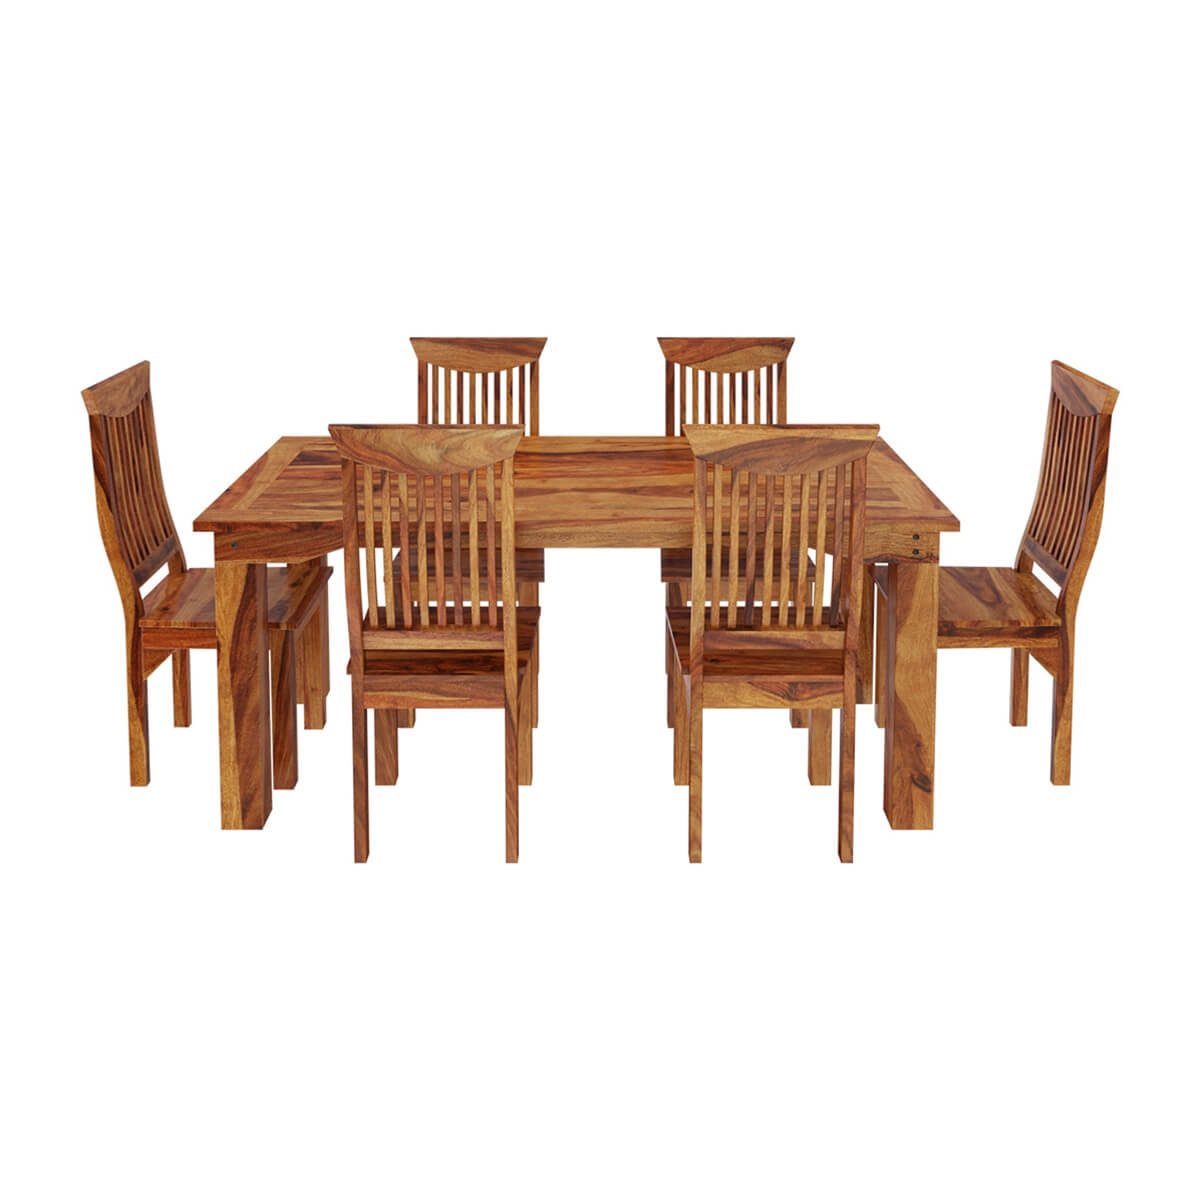 Rustic Furniture Solid Wood Large Dining Table 8 Chair Set: Idaho Modern Rustic Solid Wood Dining Table & Chair Set